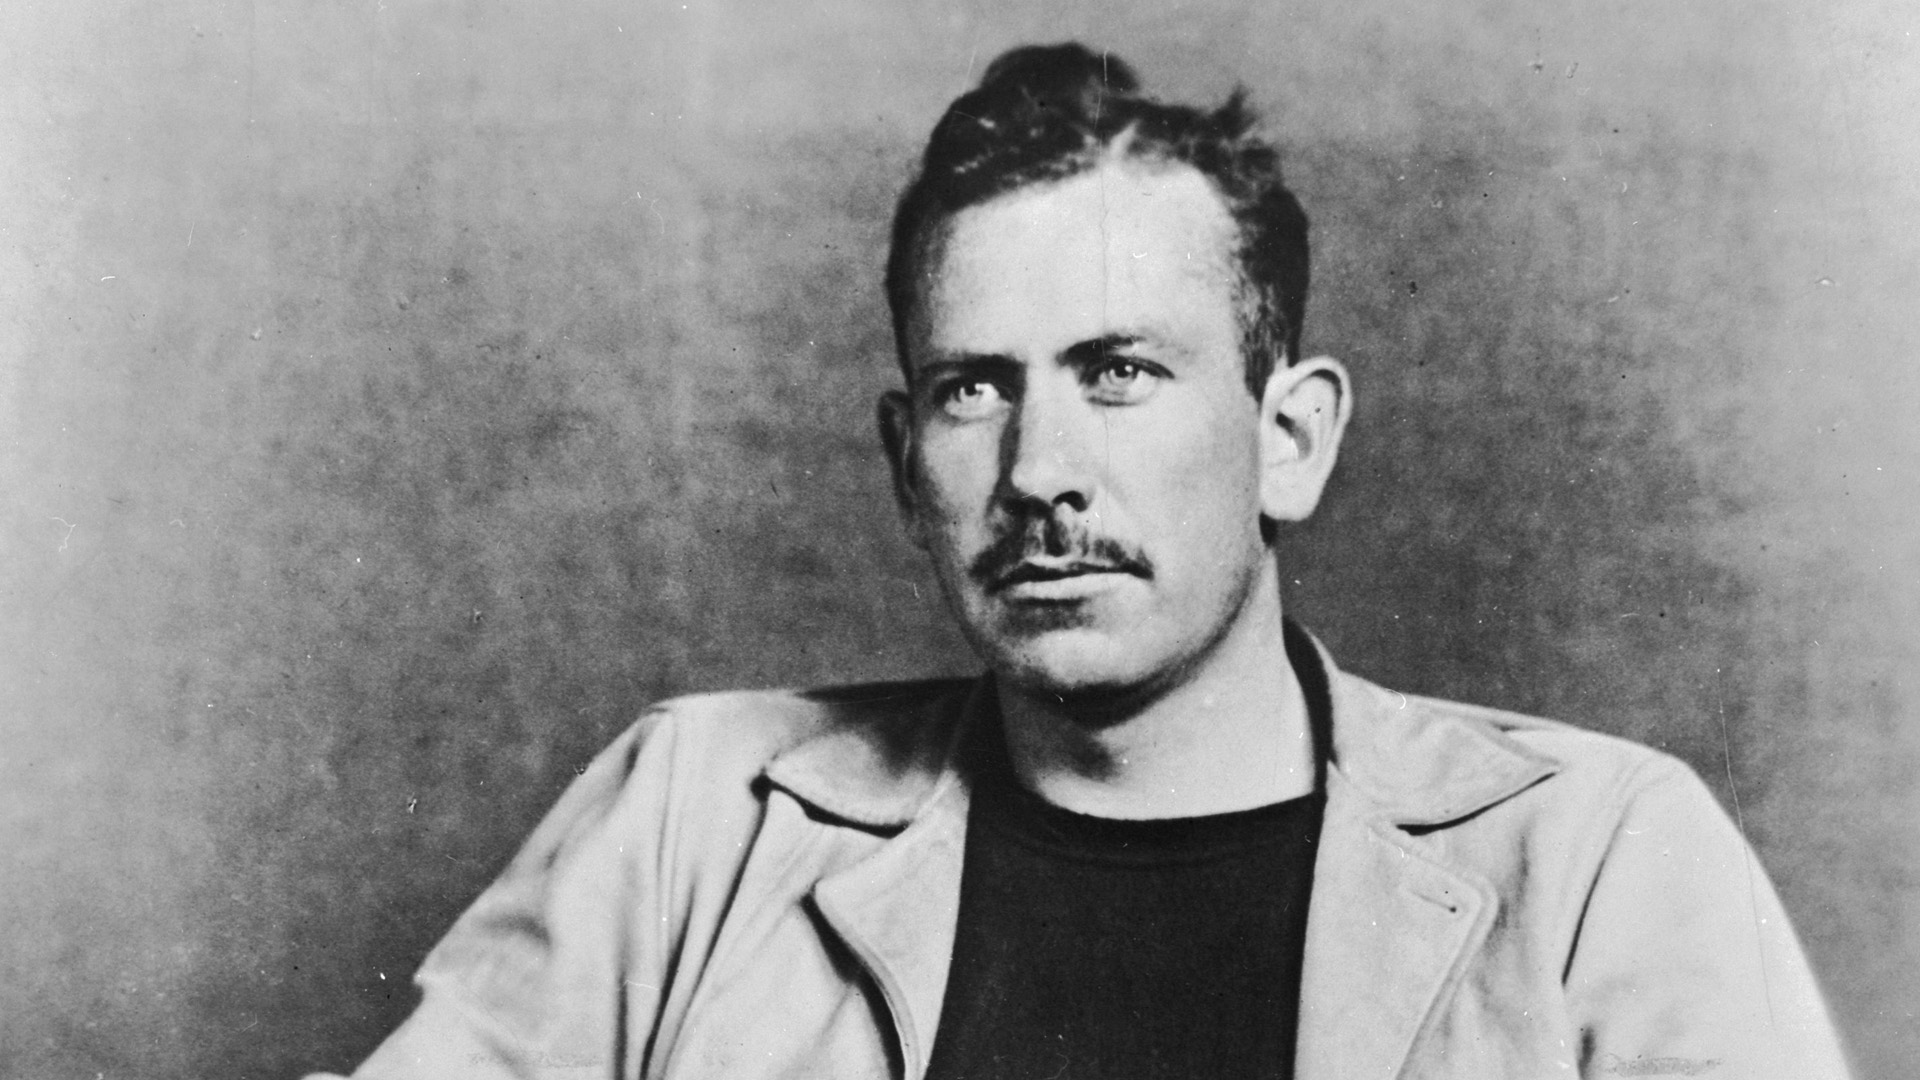 Novelist John Steinbeck (1902 - 1968) is seen in this photo from Getty Images. (Credit: Hulton Archive/Getty Images)